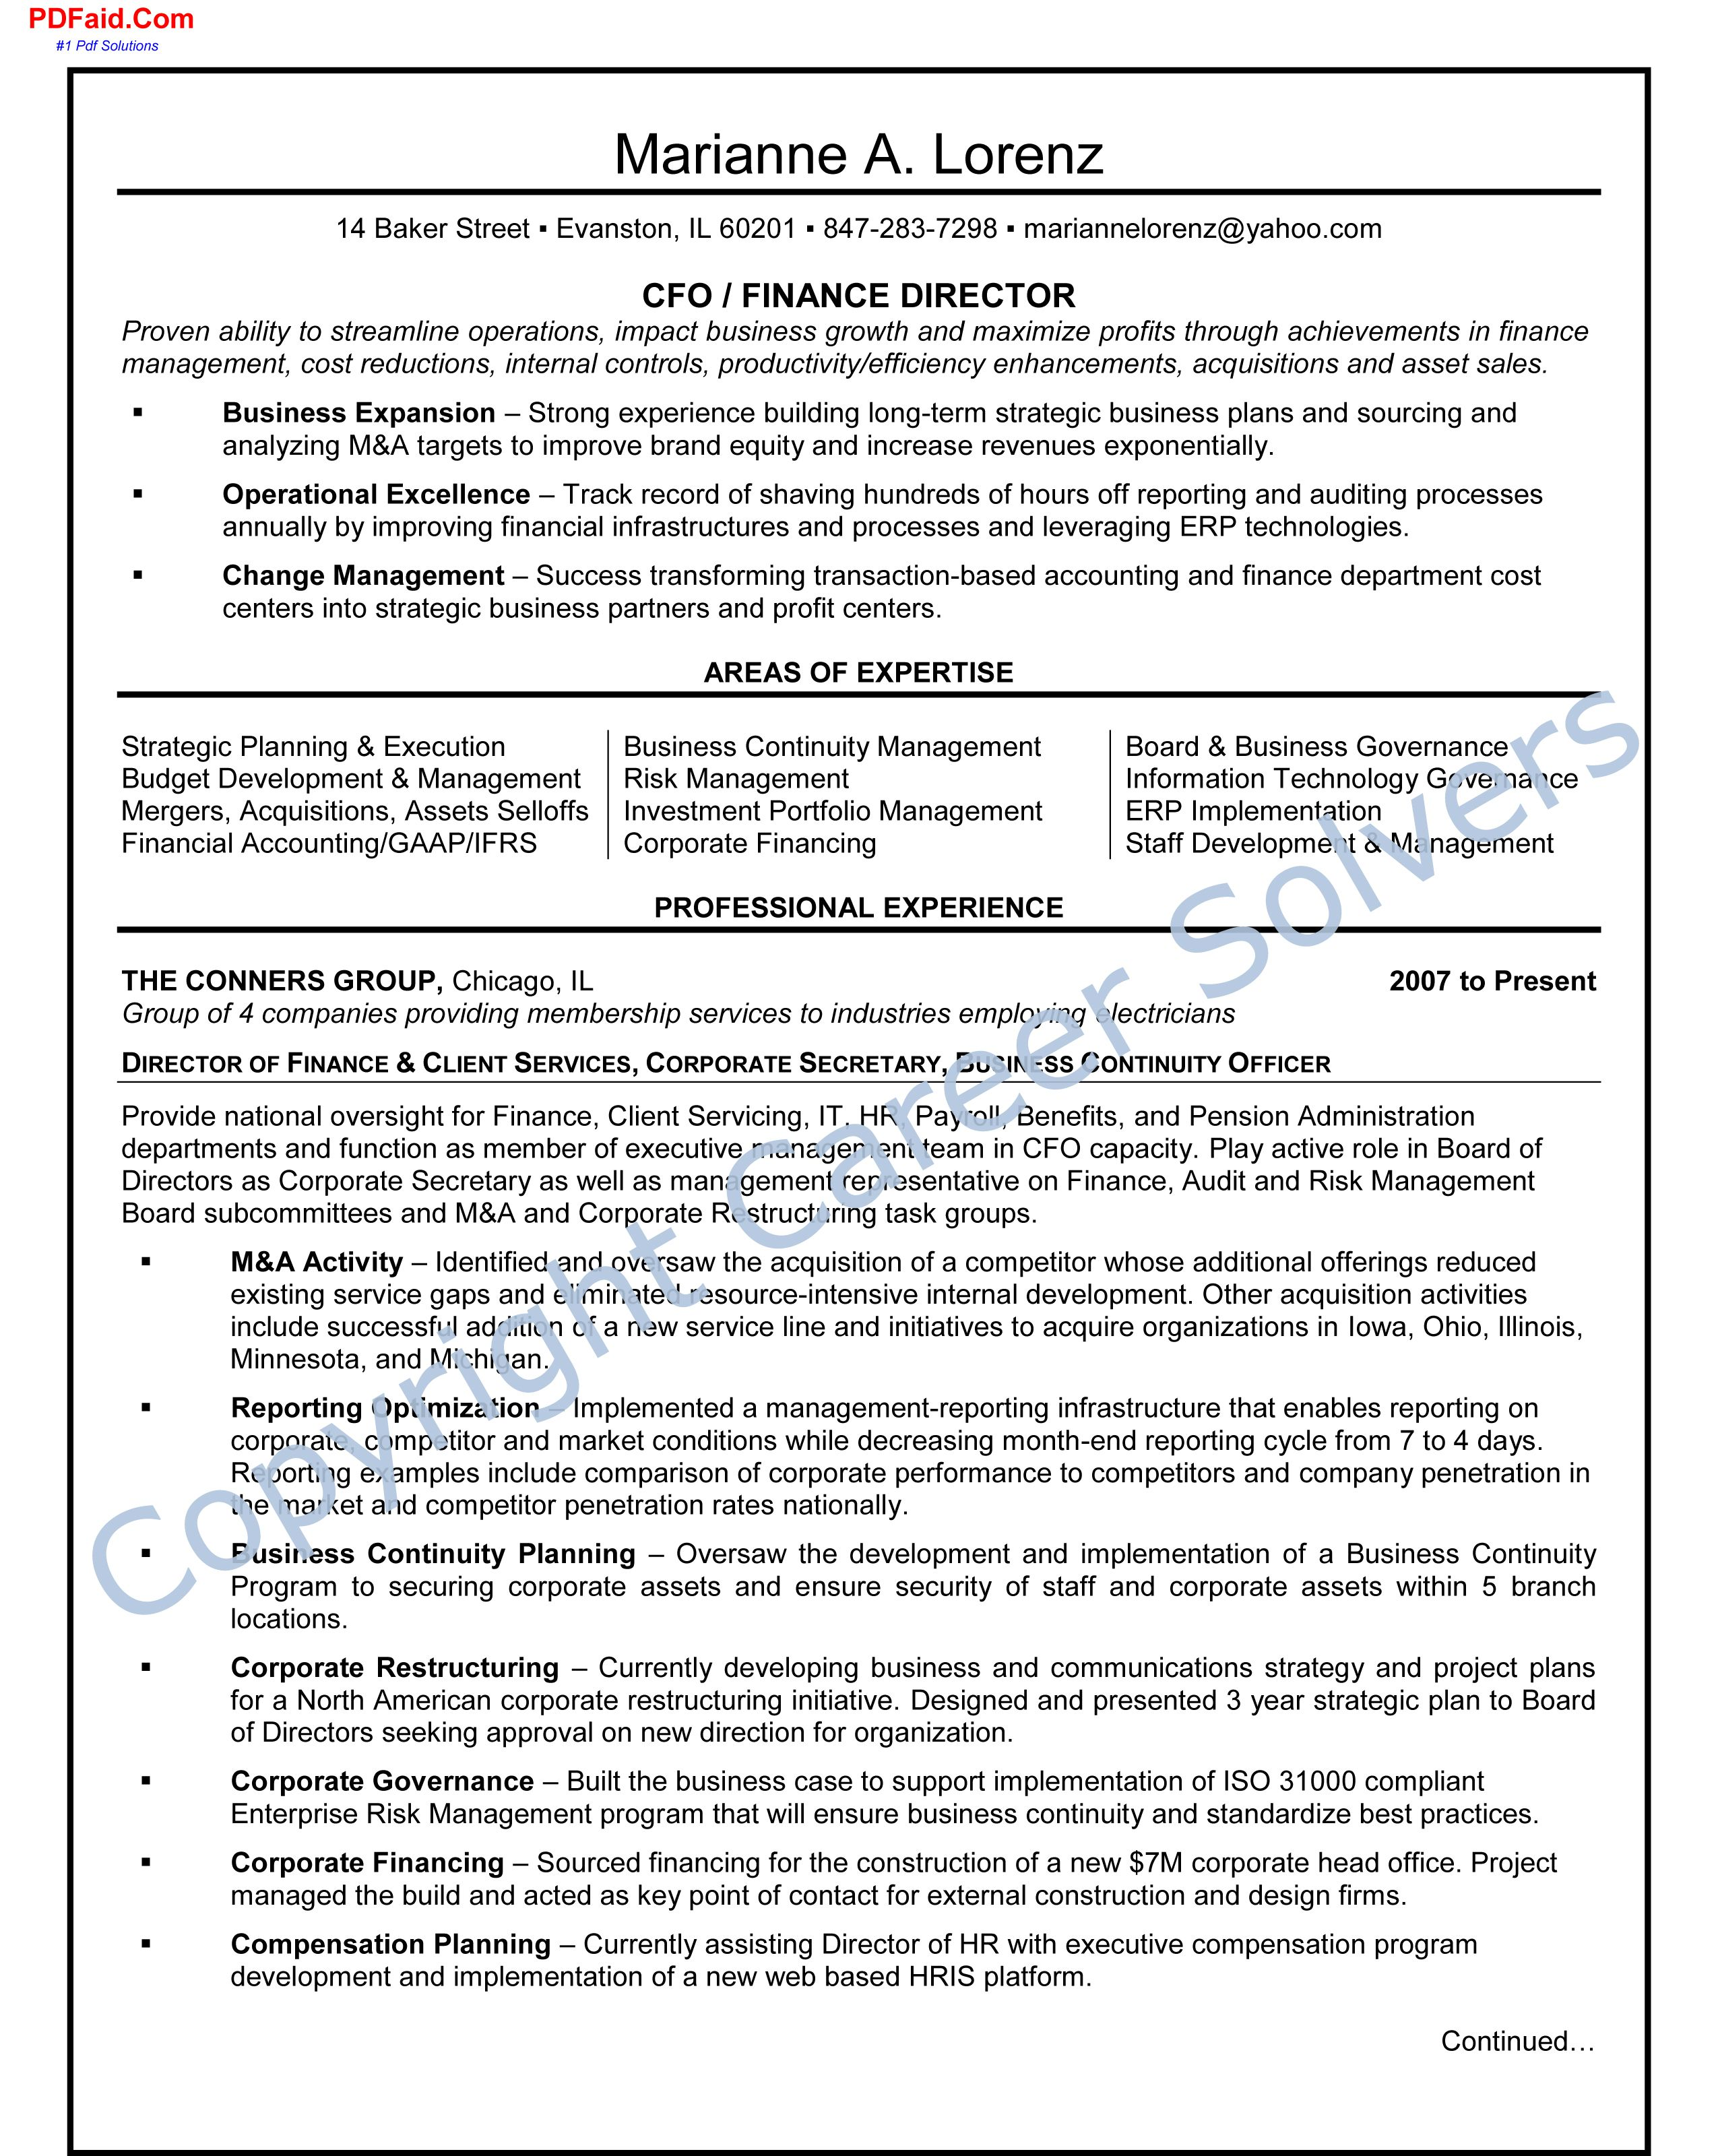 Finance Executive Cover Letter For Resume Resume Business Continuity